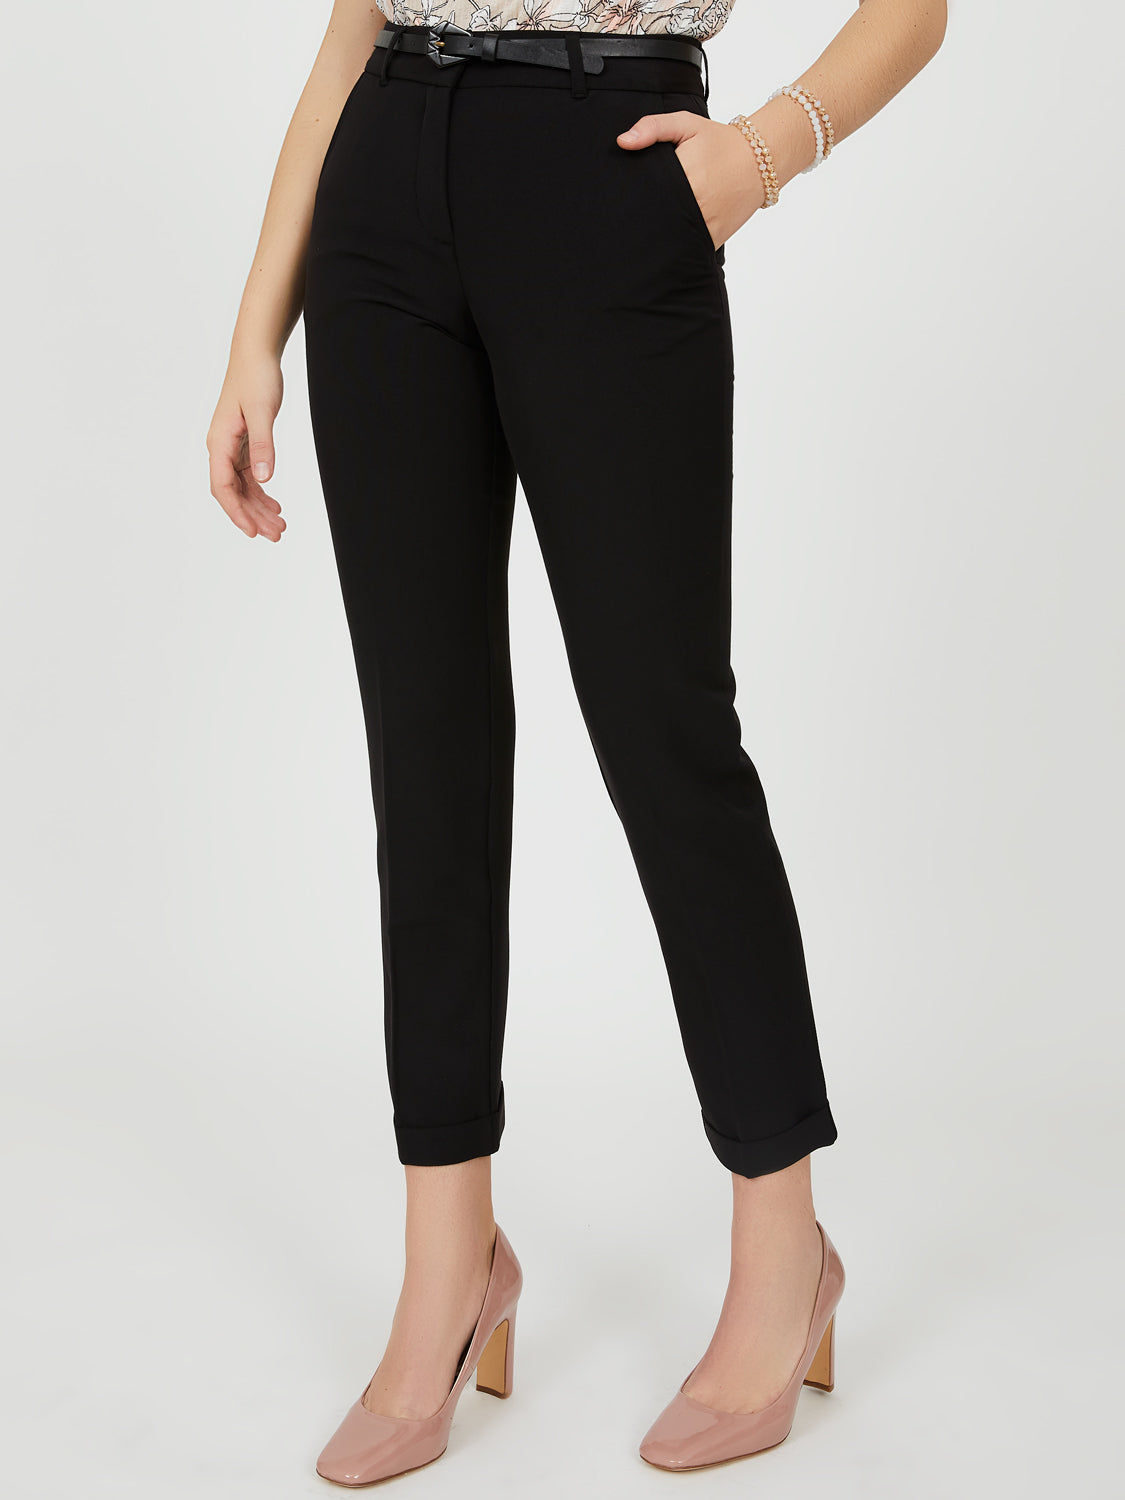 Belted Ankle Pant